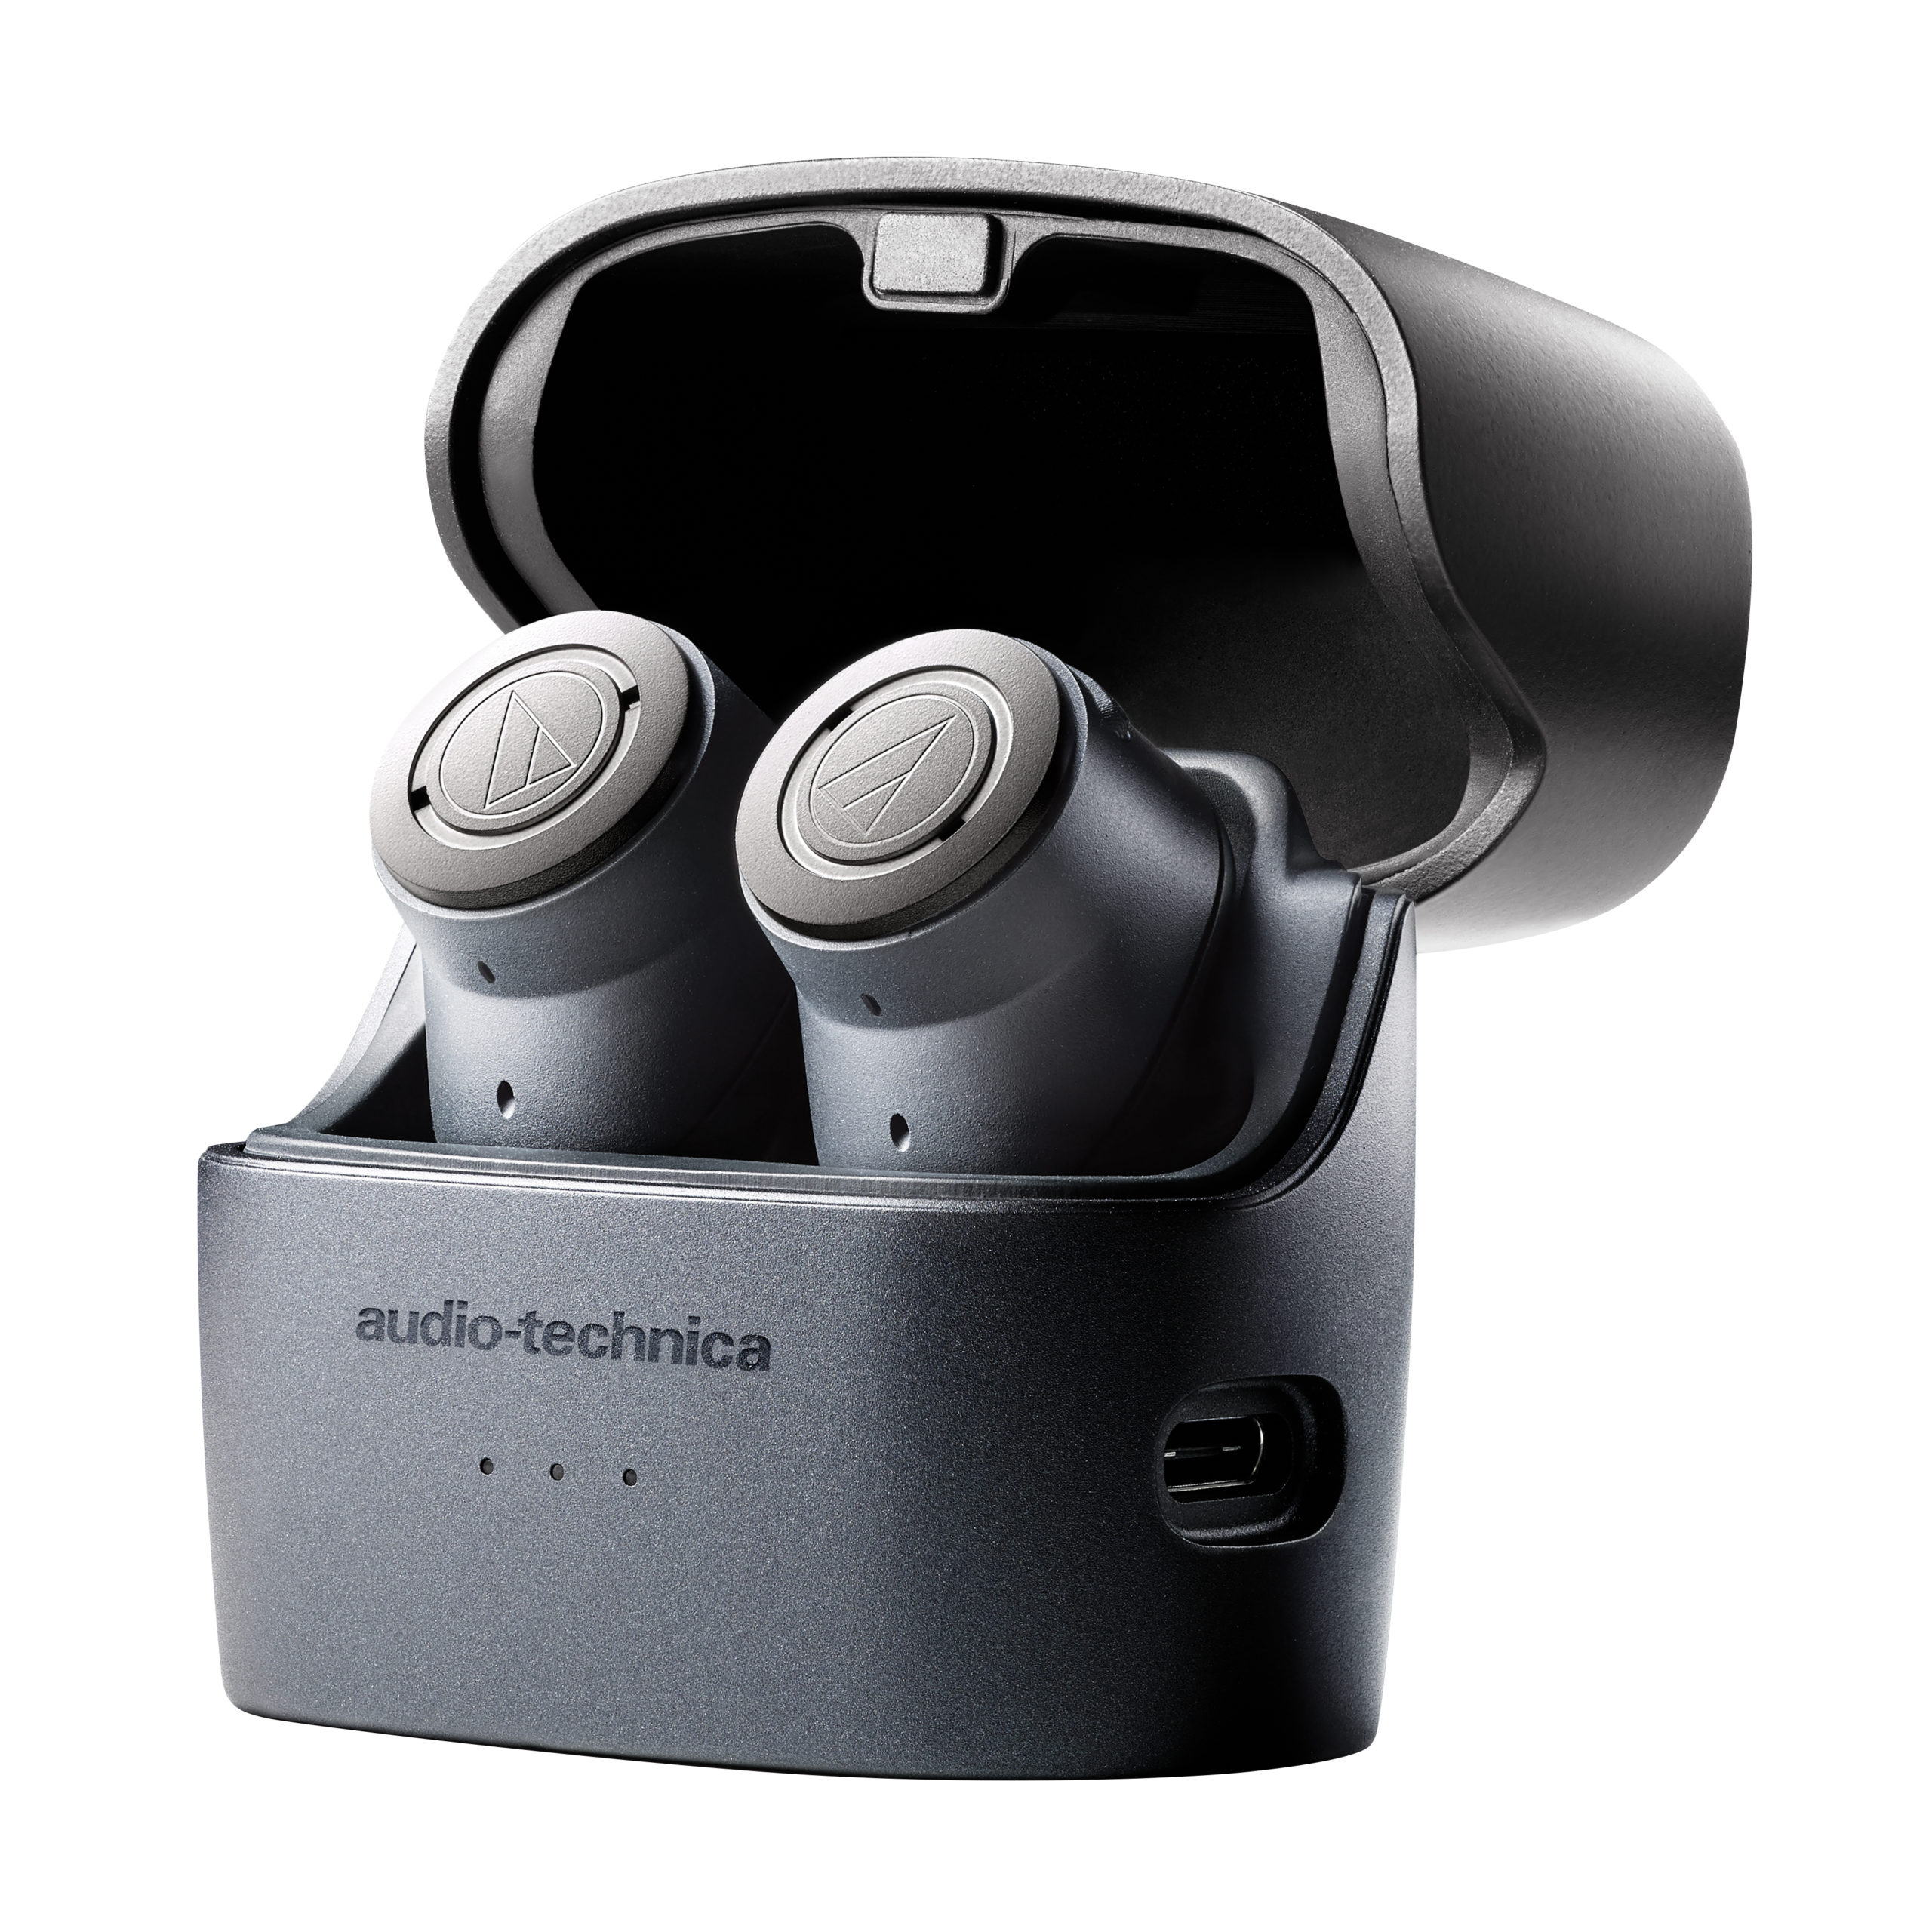 Audio-Technica announces its first true wireless earbuds with active noise cancellation